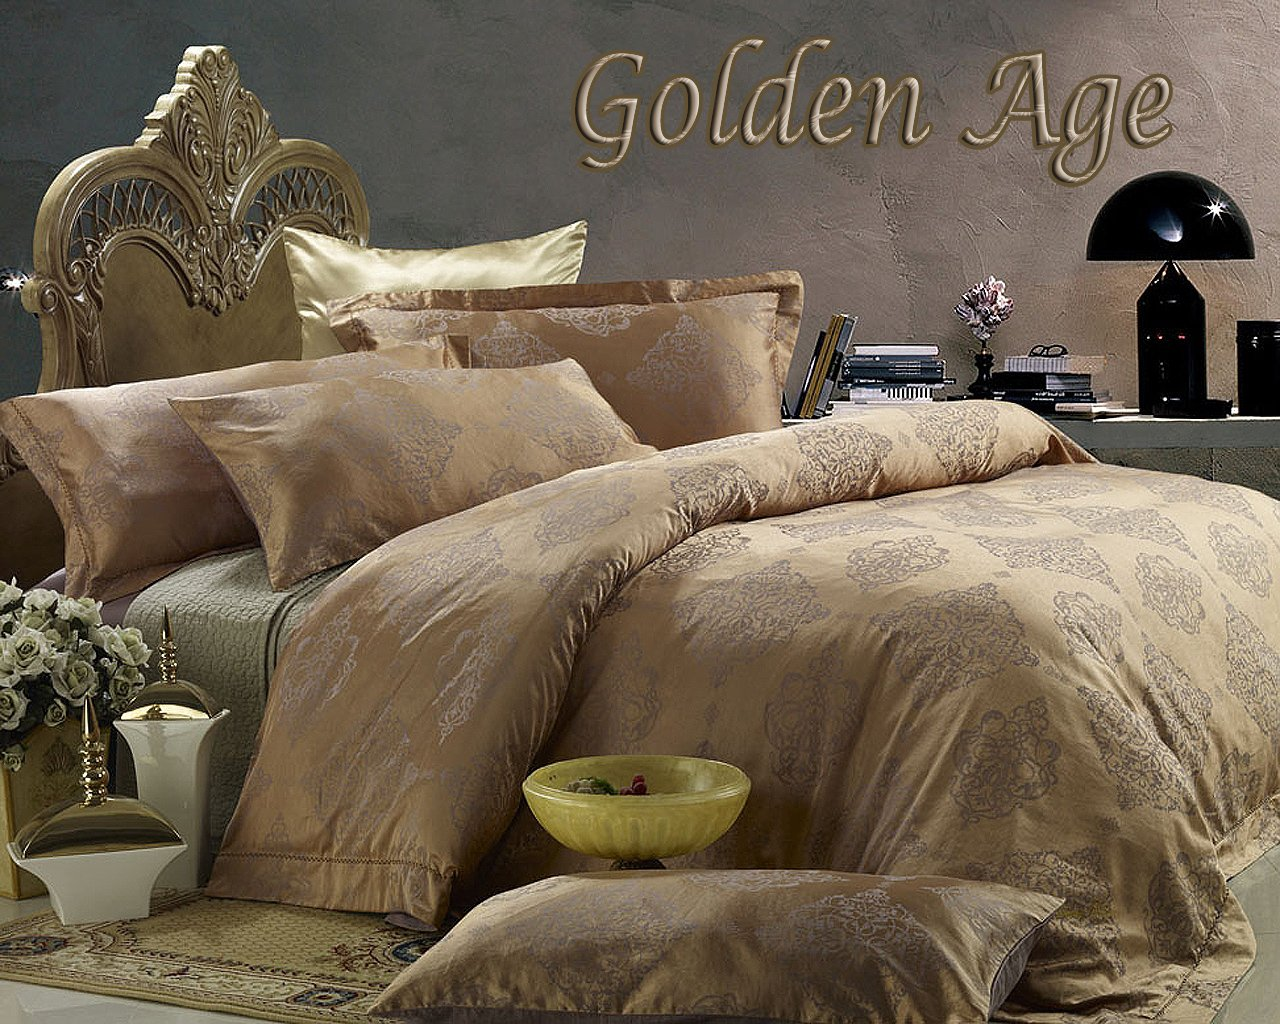 Soulful Gen Age By Dolce King Size Egyptian Cotton Duvet Cover Set Ina Dolce Mela Gift Box Gen Age By Dolce King Size Egyptian Cotton Duvet Cover houzz 01 Duvet Covers King